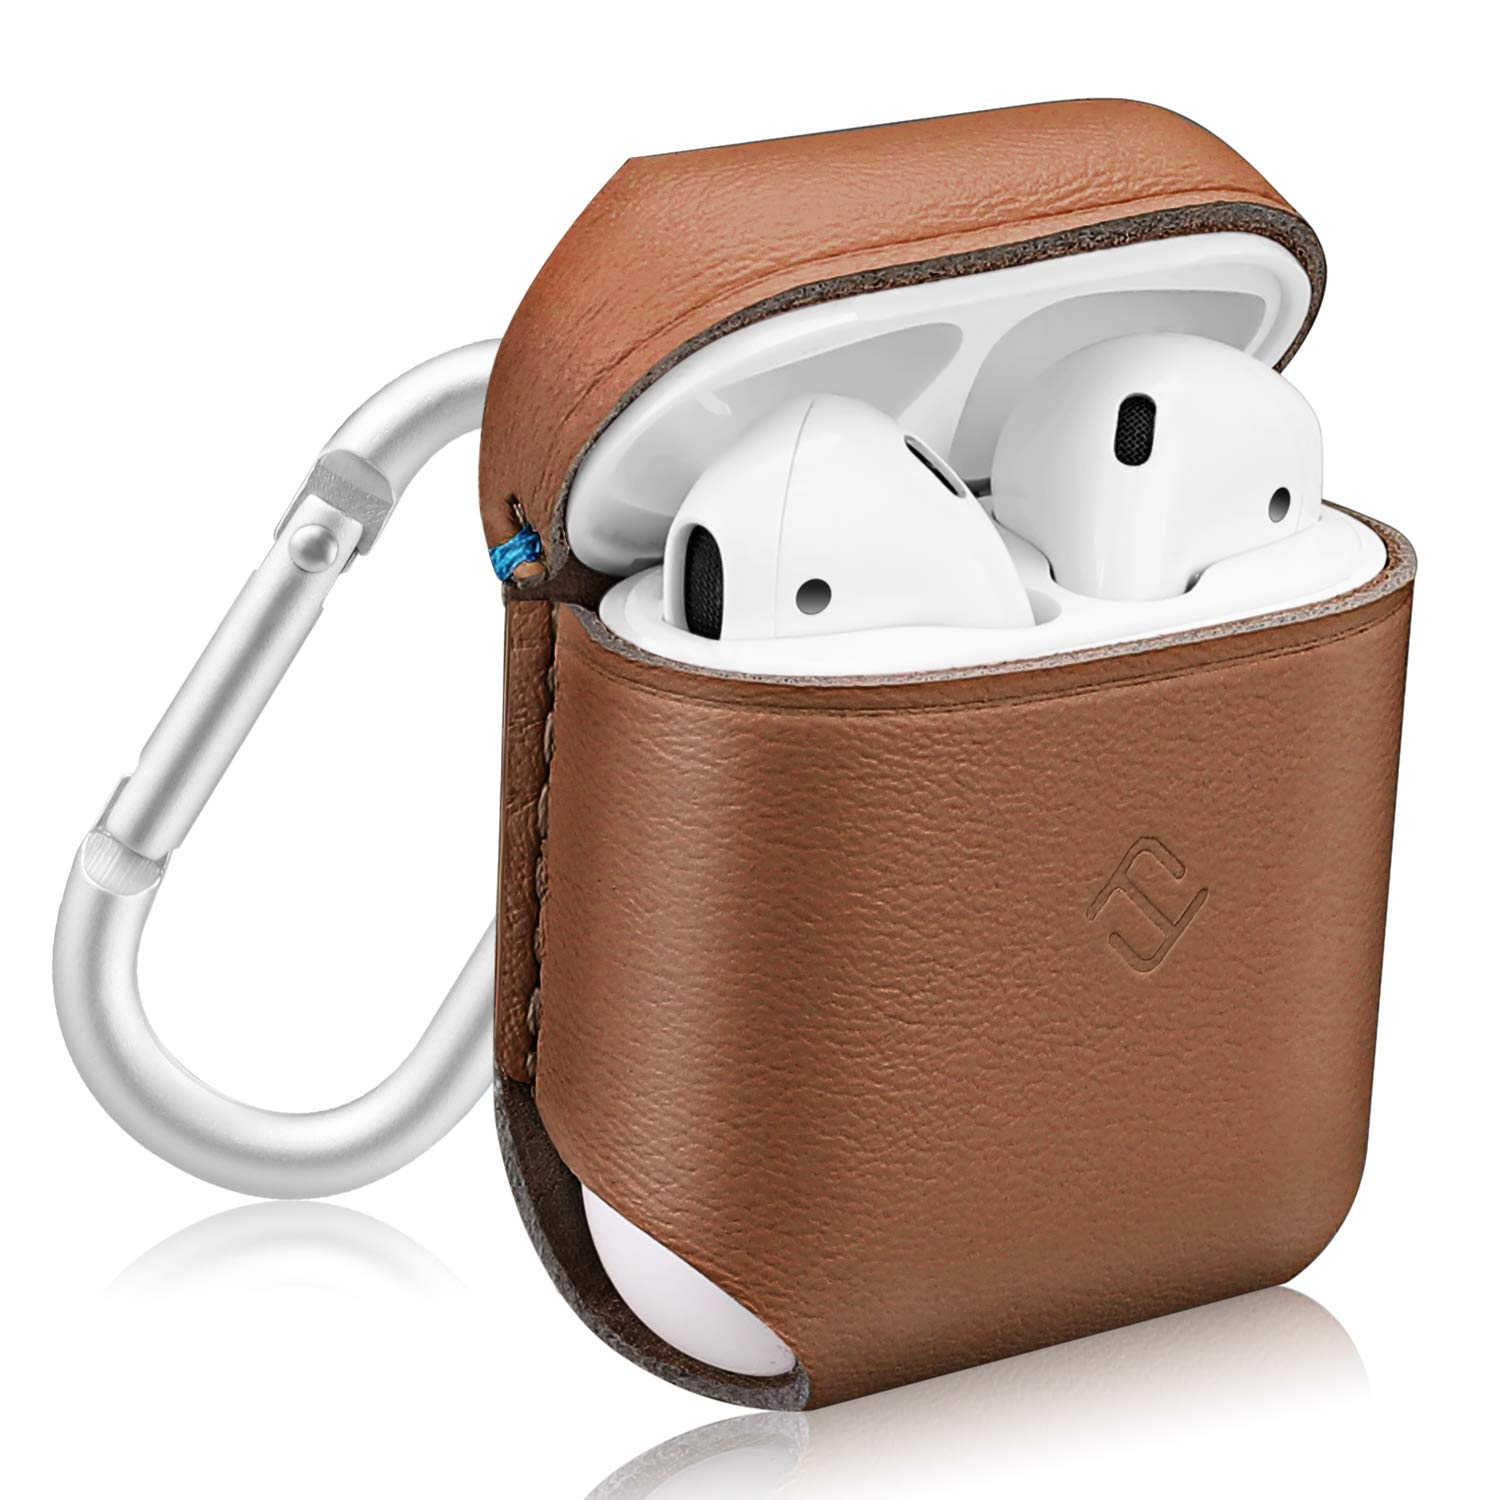 Fintie Genuine Leather Case for AirPods, Slim Fit Protective Cover Skin with Carabiner for AirPods 1 and AirPods 2 Charging Case, Brown